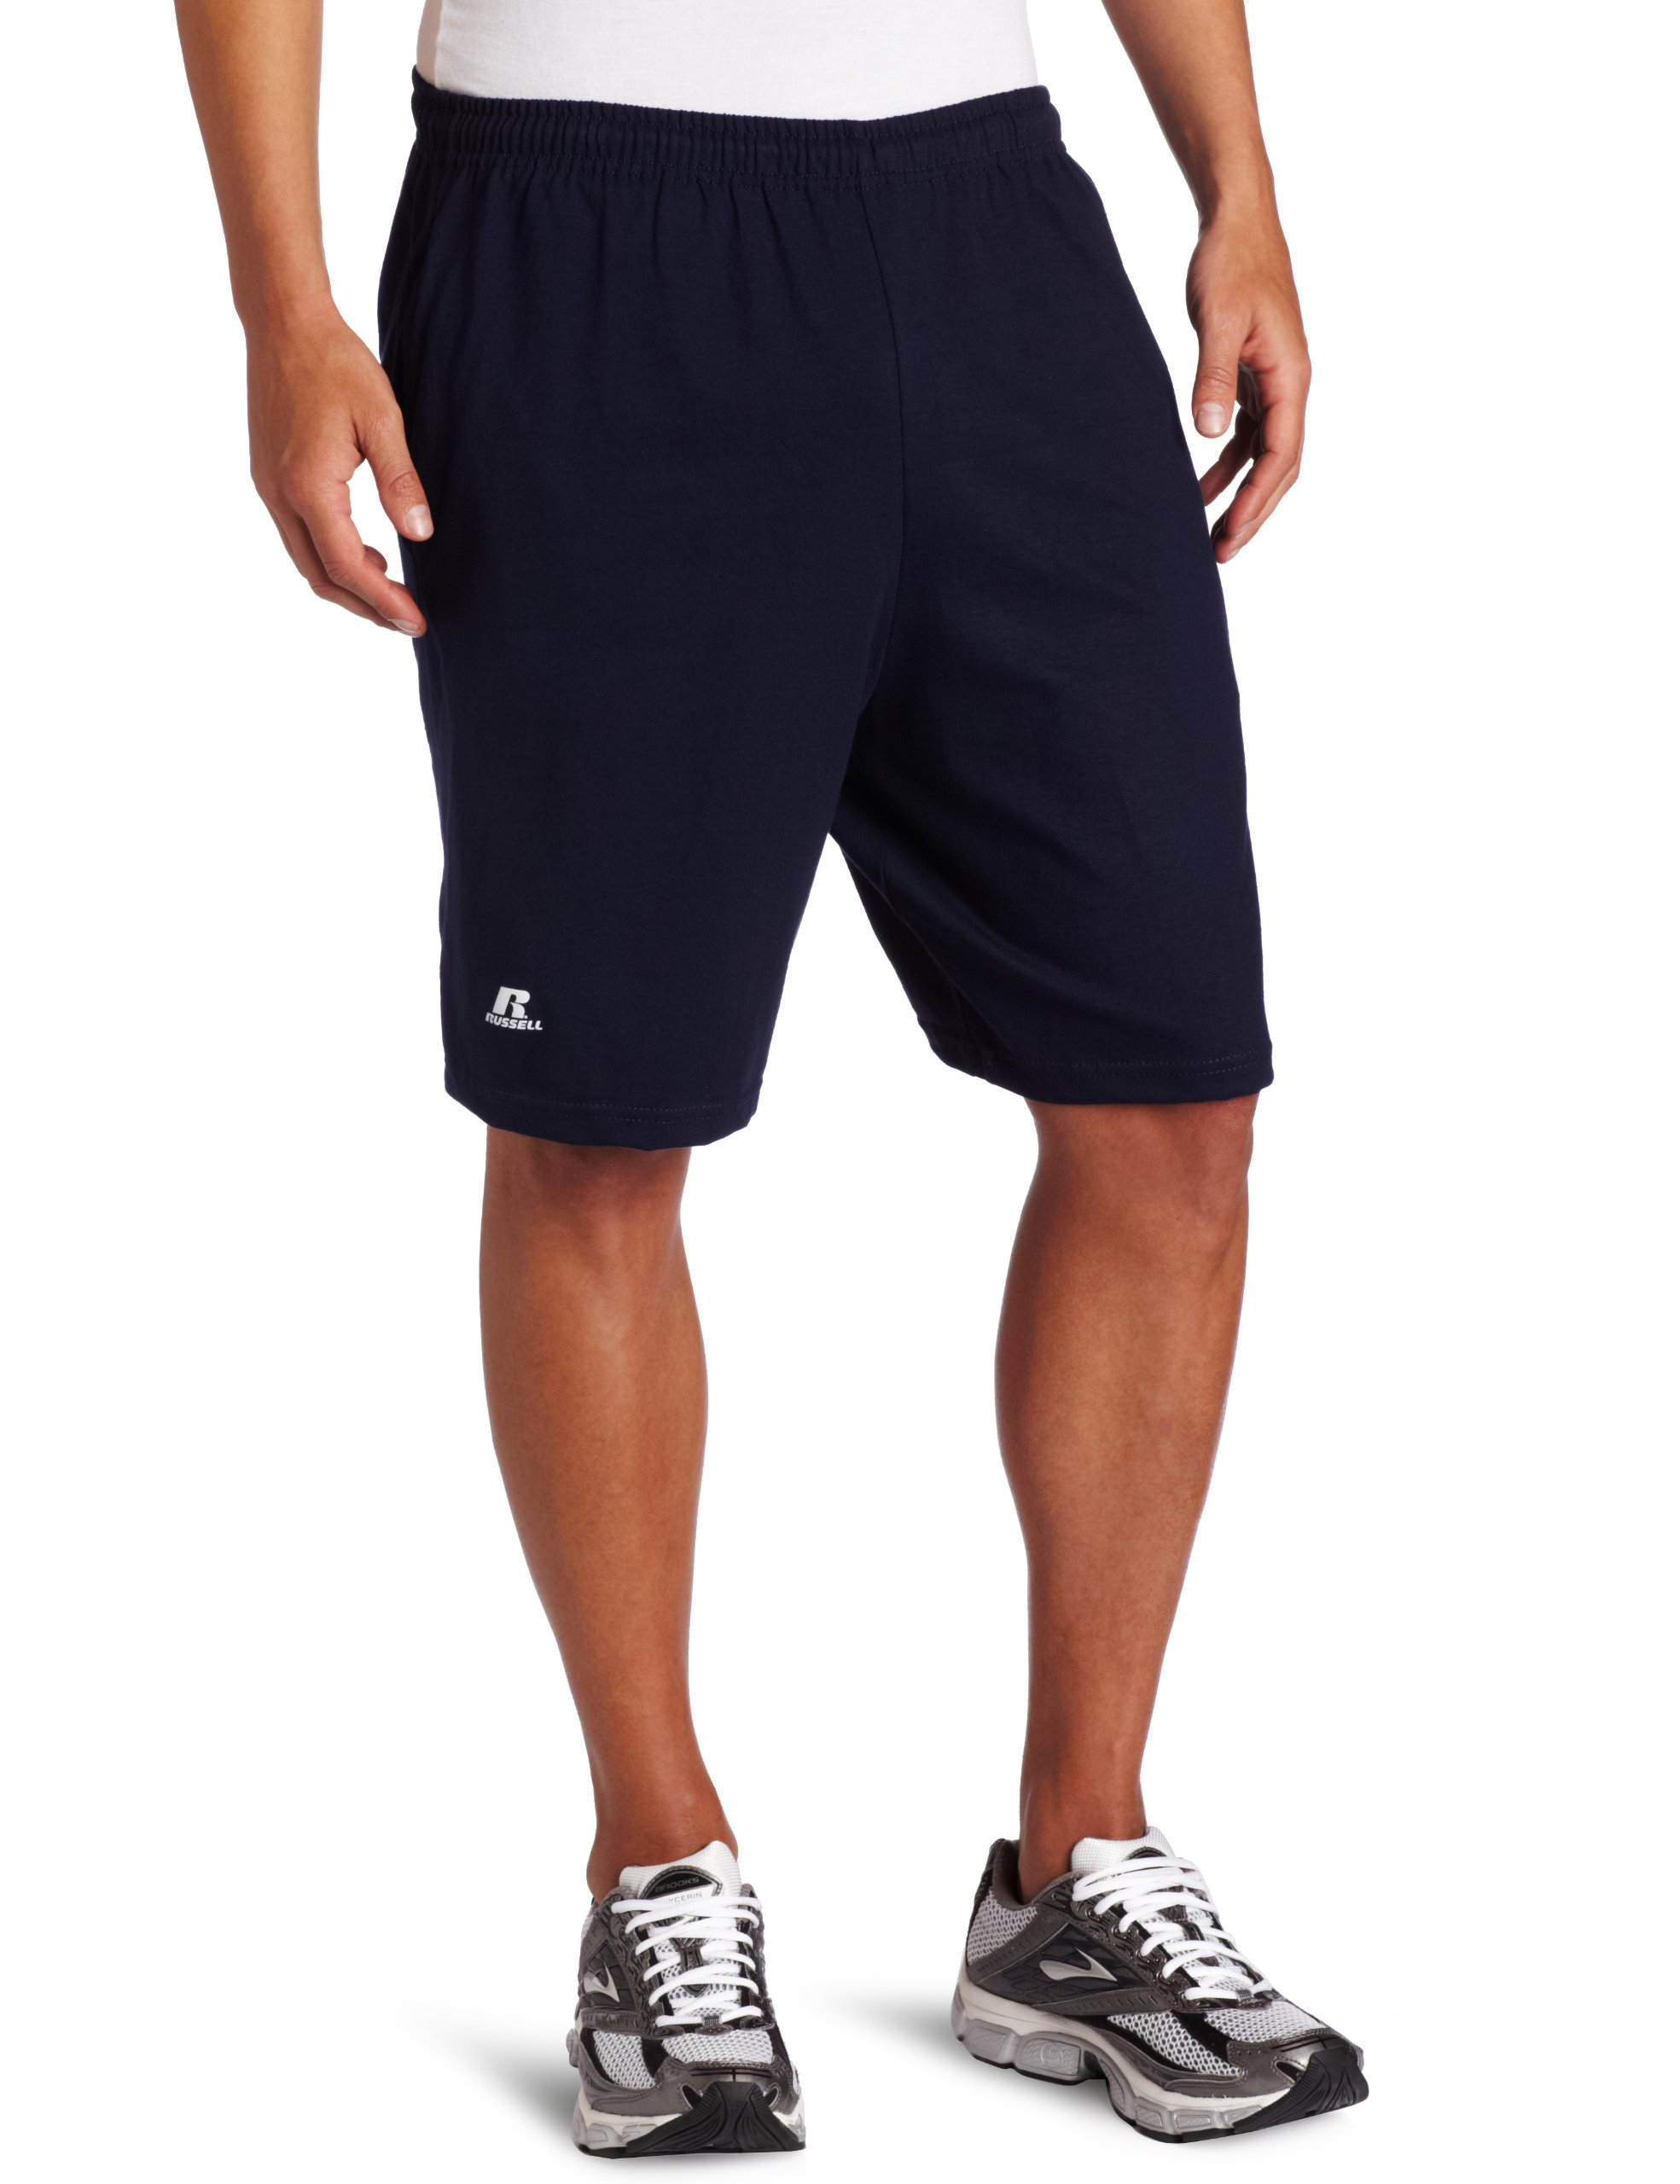 Russell Athletic Men's Cotton Baseline Short with